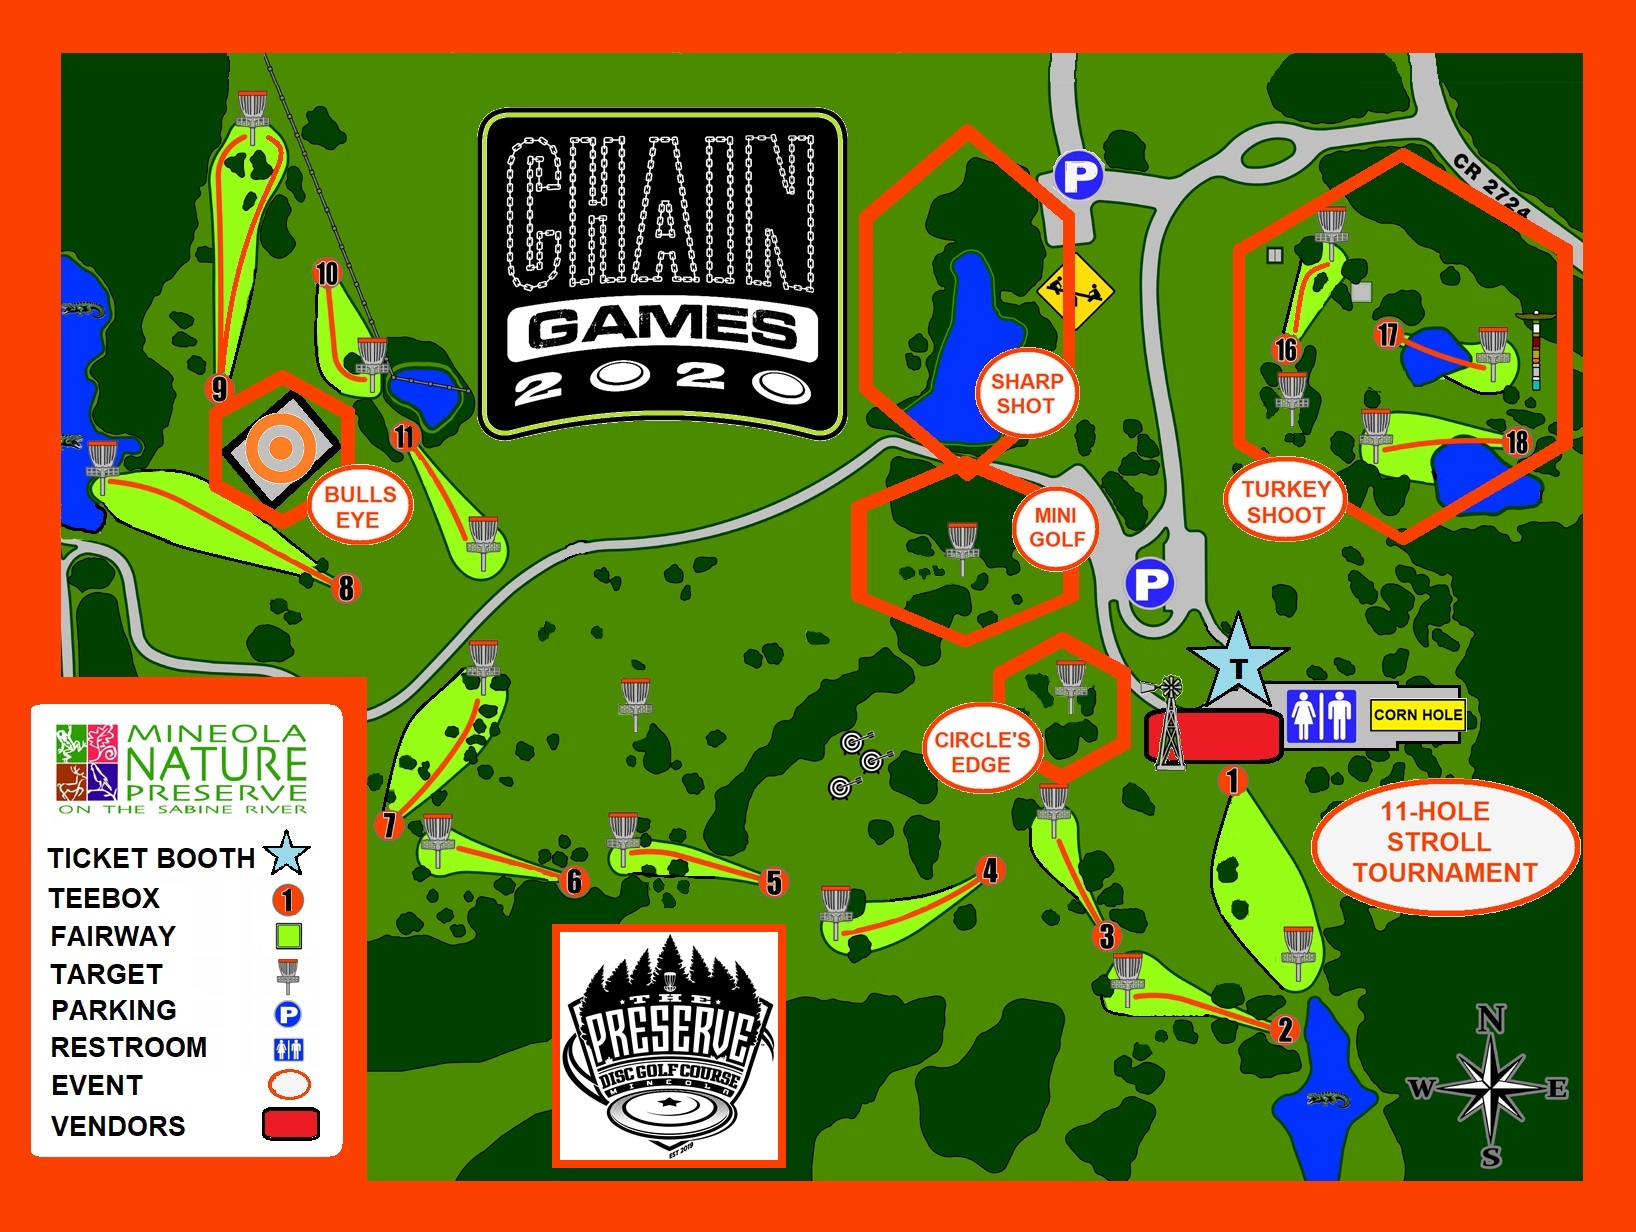 CHAIN GAMES MAP - with EVENTS.jpg